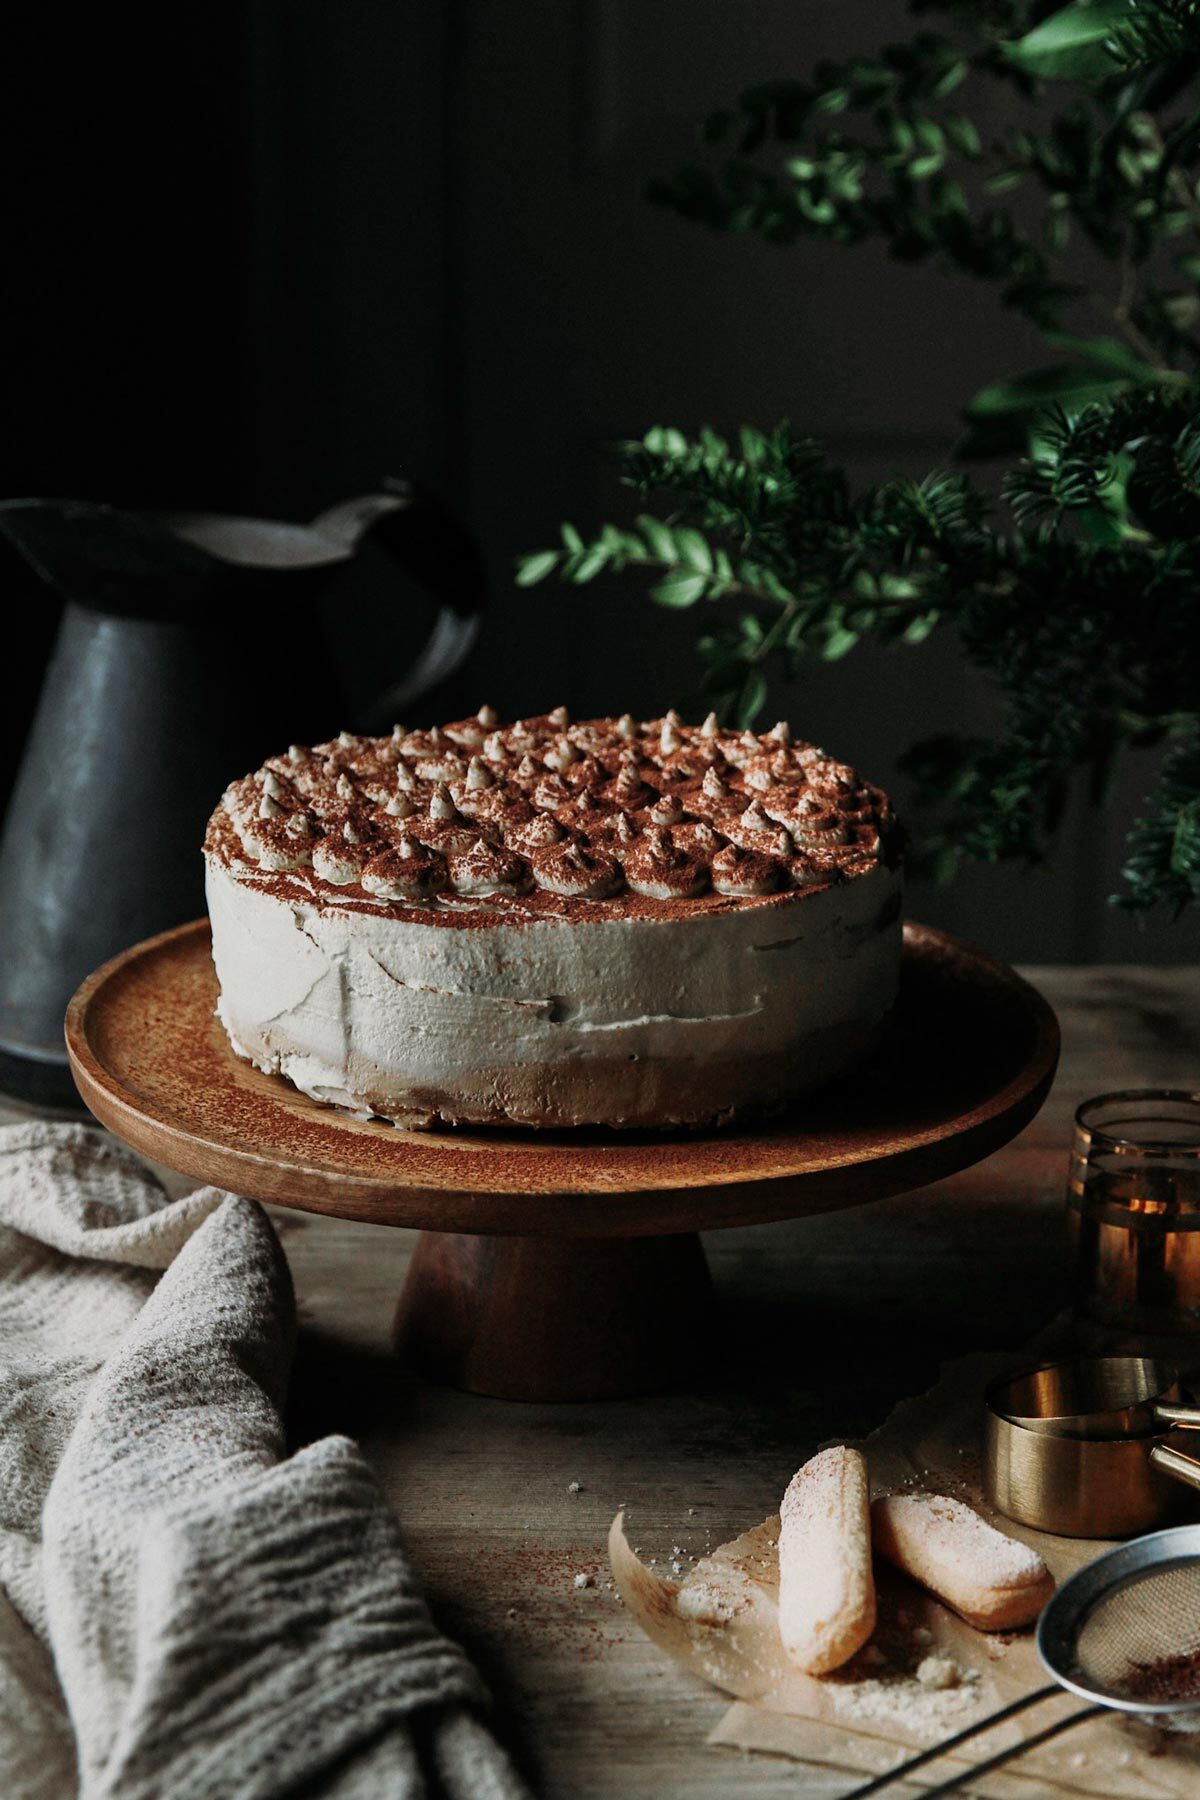 Tiramisu cheesecake on a cake stand with kitchen towel on a rustic table